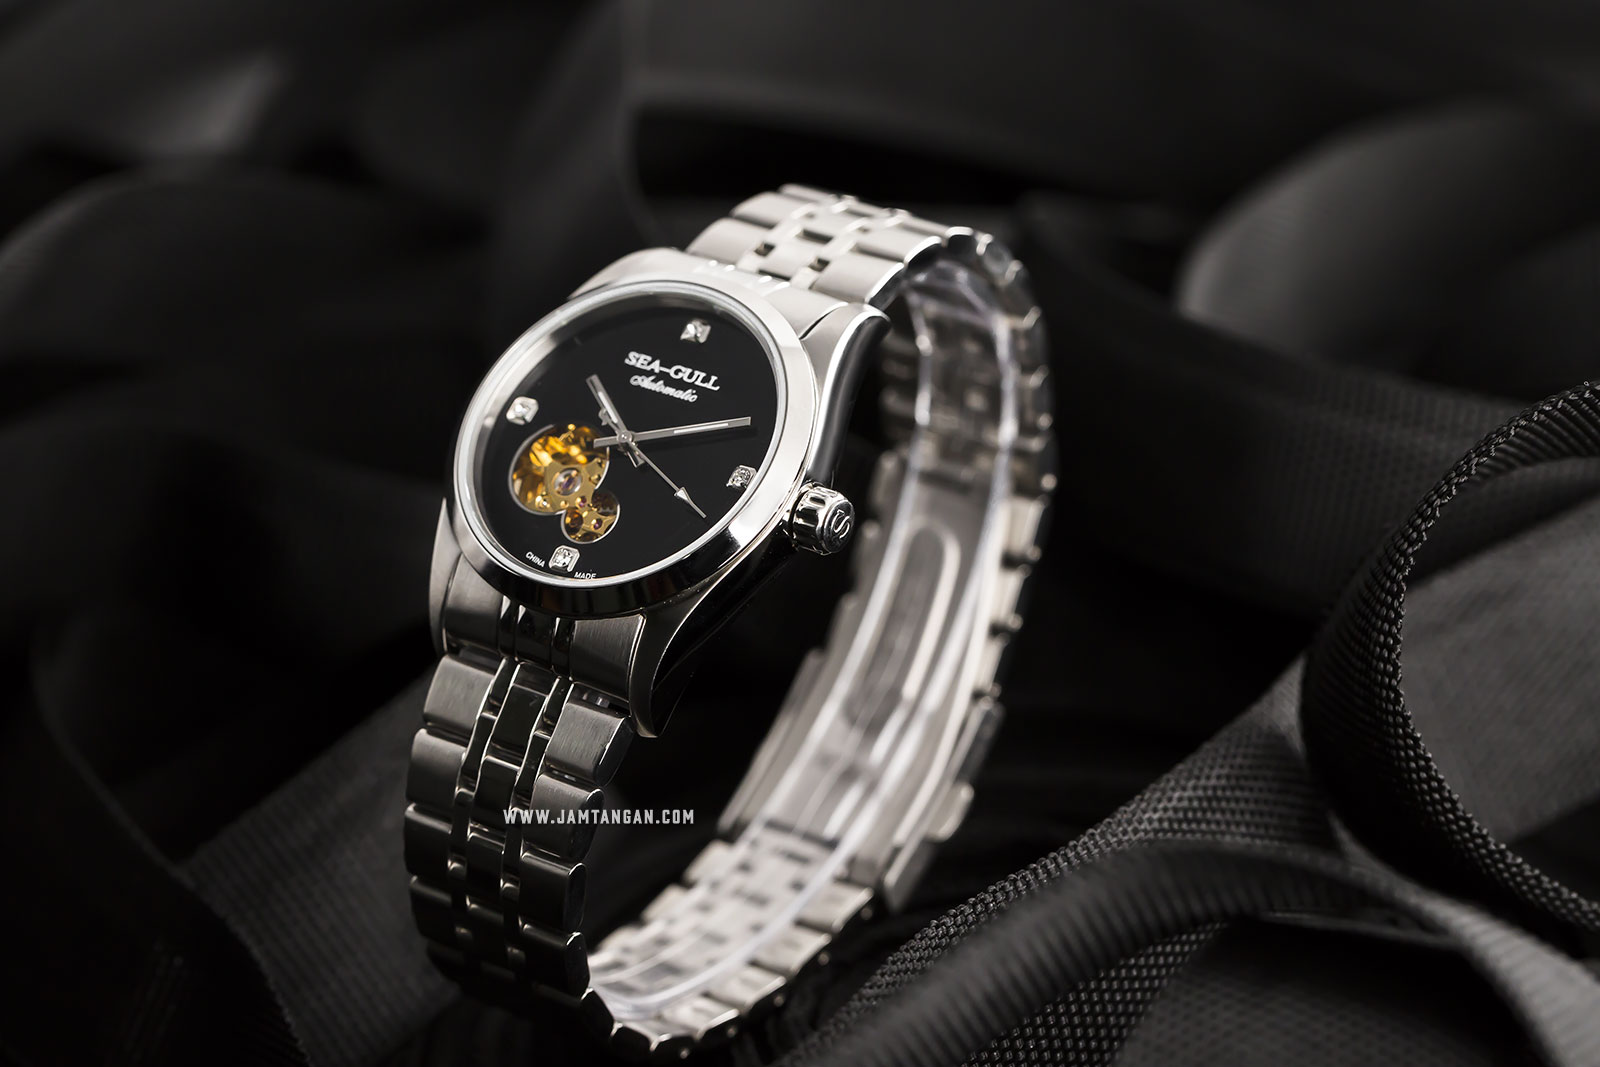 Seagull M149SK Classic Automatic Mechanical Sea-Gull Black Dial Stainless Steel Machtwatch